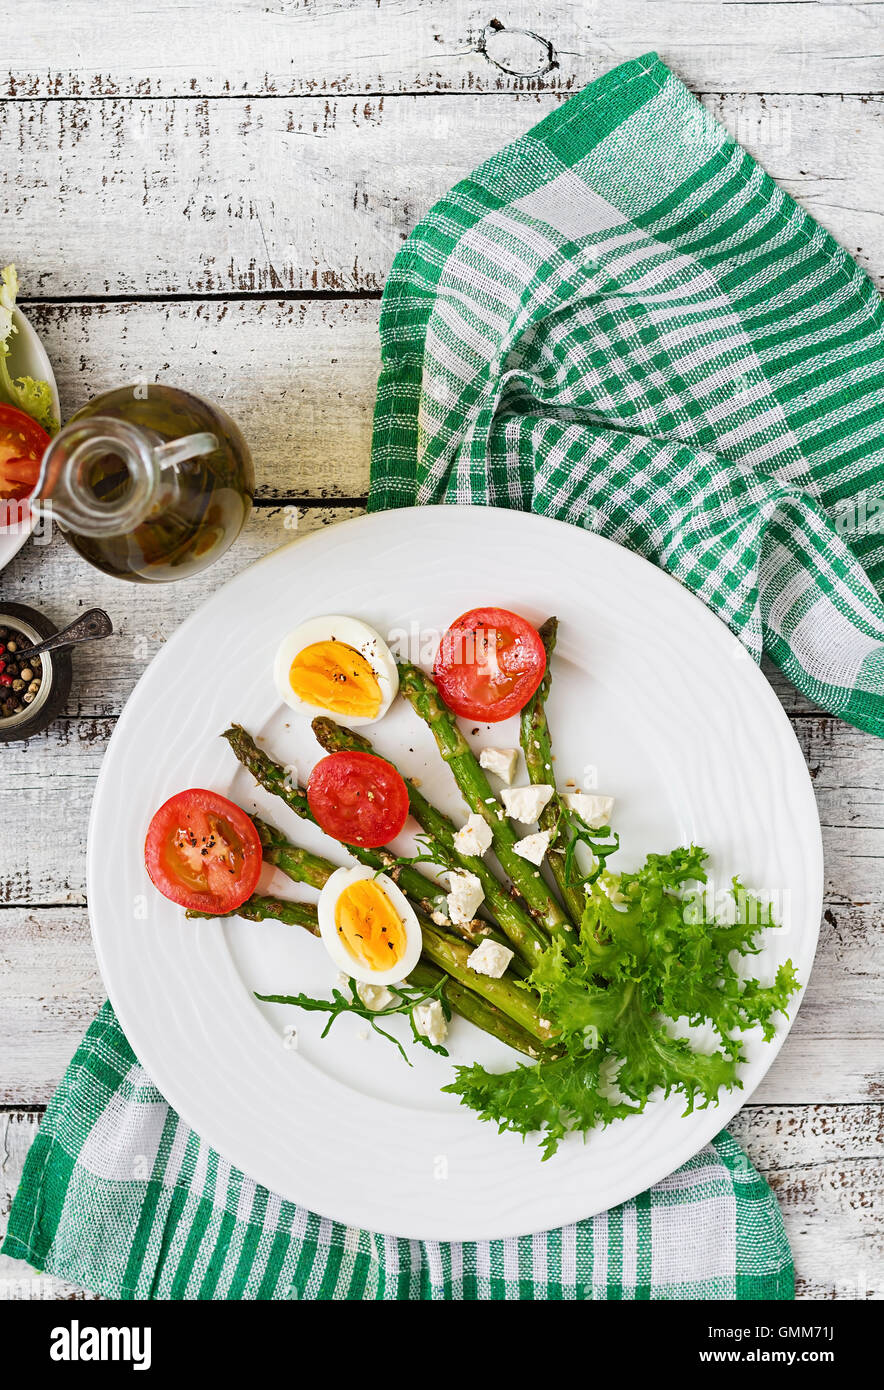 Warm salad of roasted asparagus, feta cheese, tomatoes and eggs. Top view - Stock Image